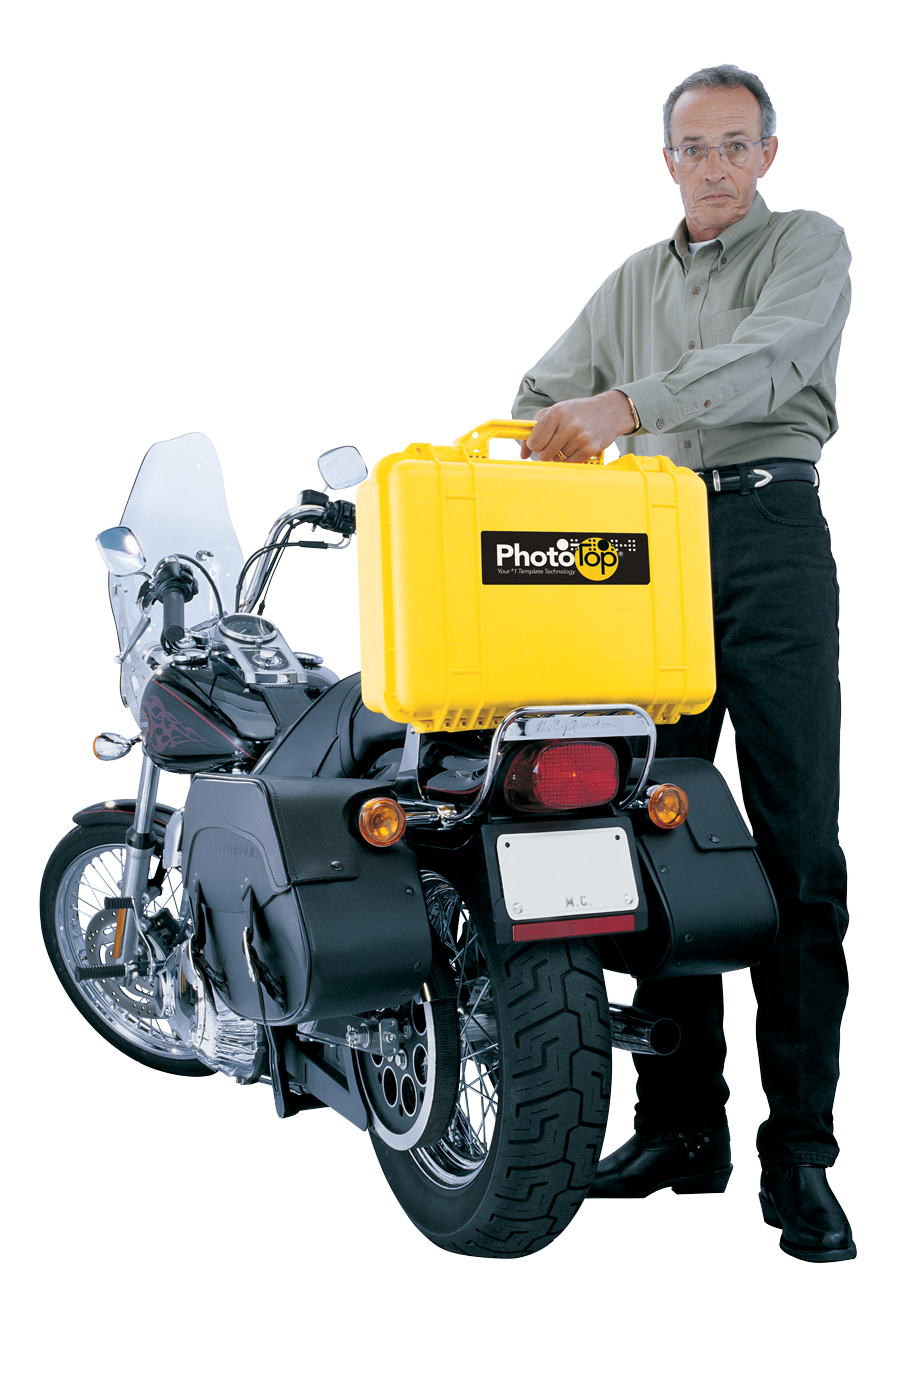 PhotoTop_Motorcycle_0618.png